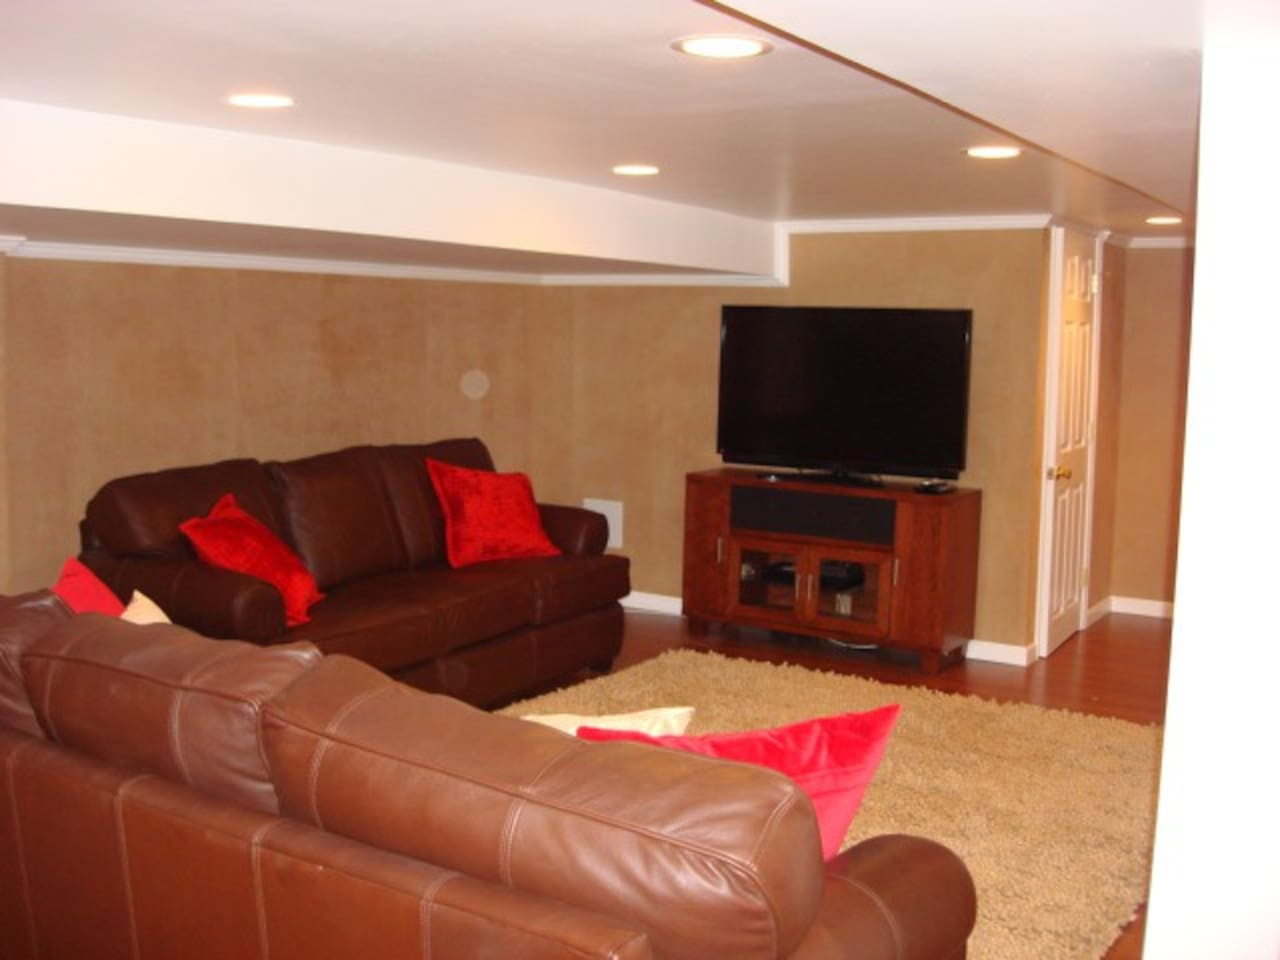 Two sofas and TV